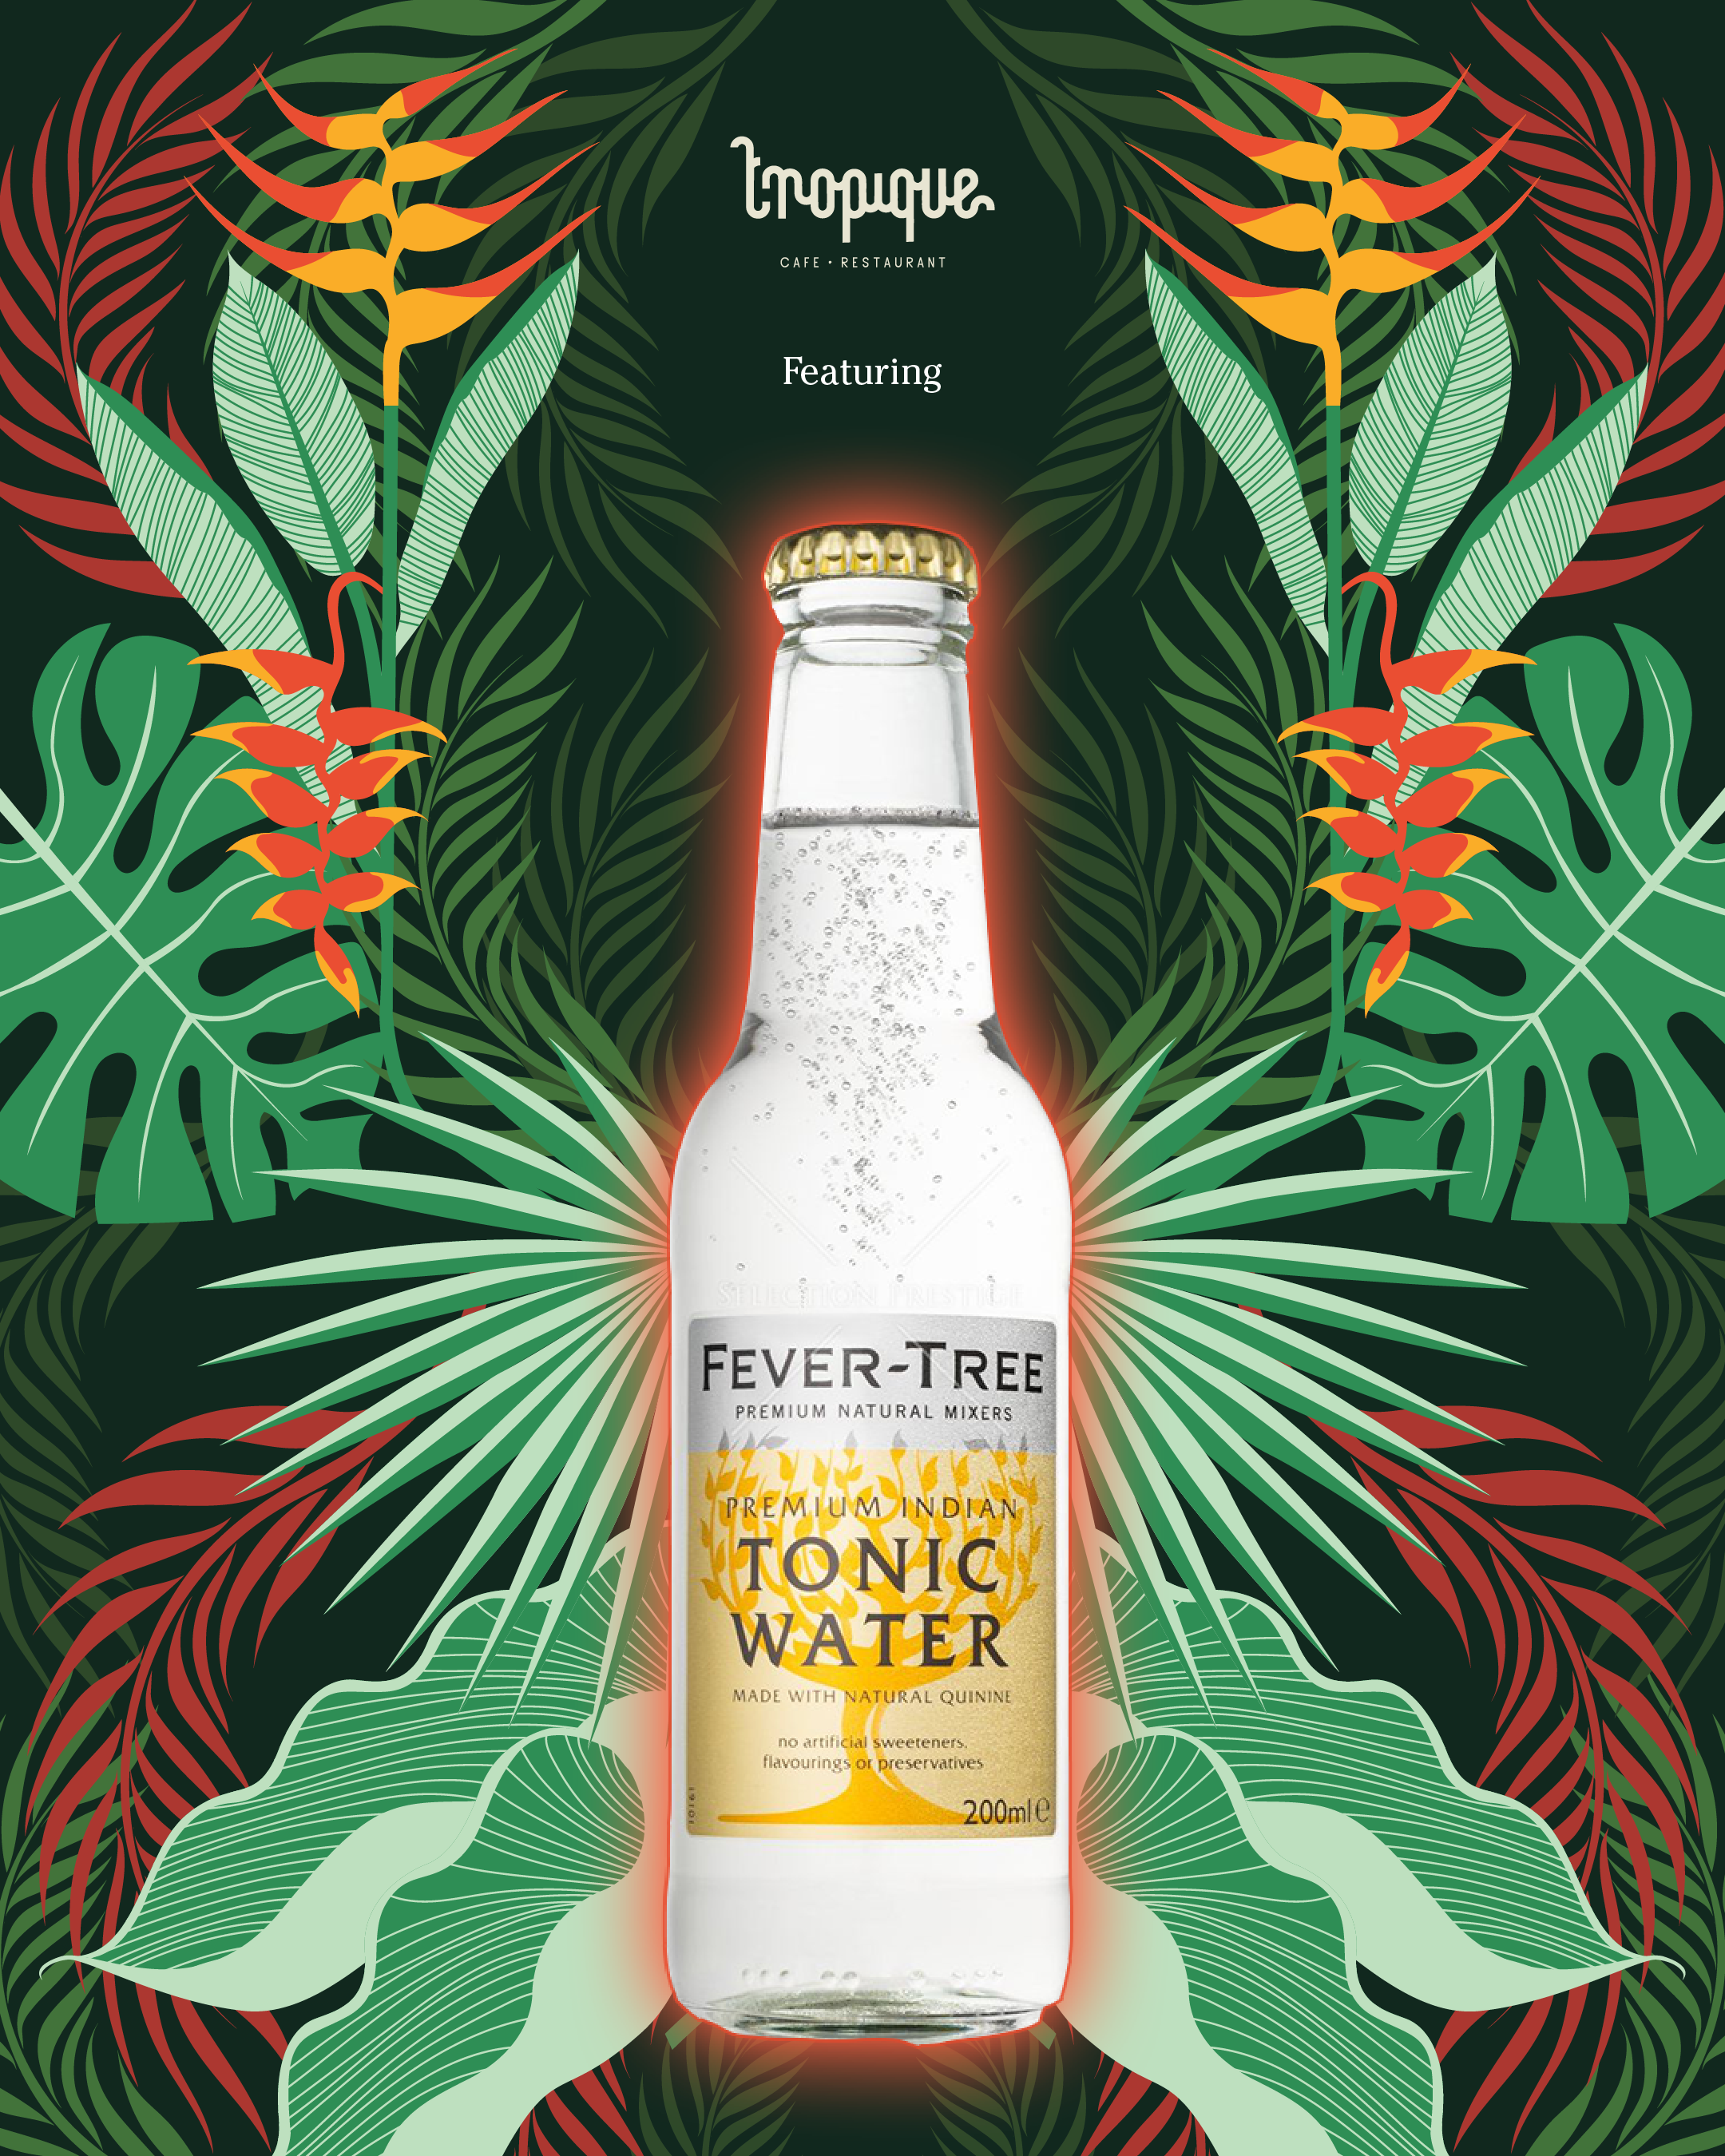 Safari-social-tropique-cafe-restaurant-fever-tree-tonic-water